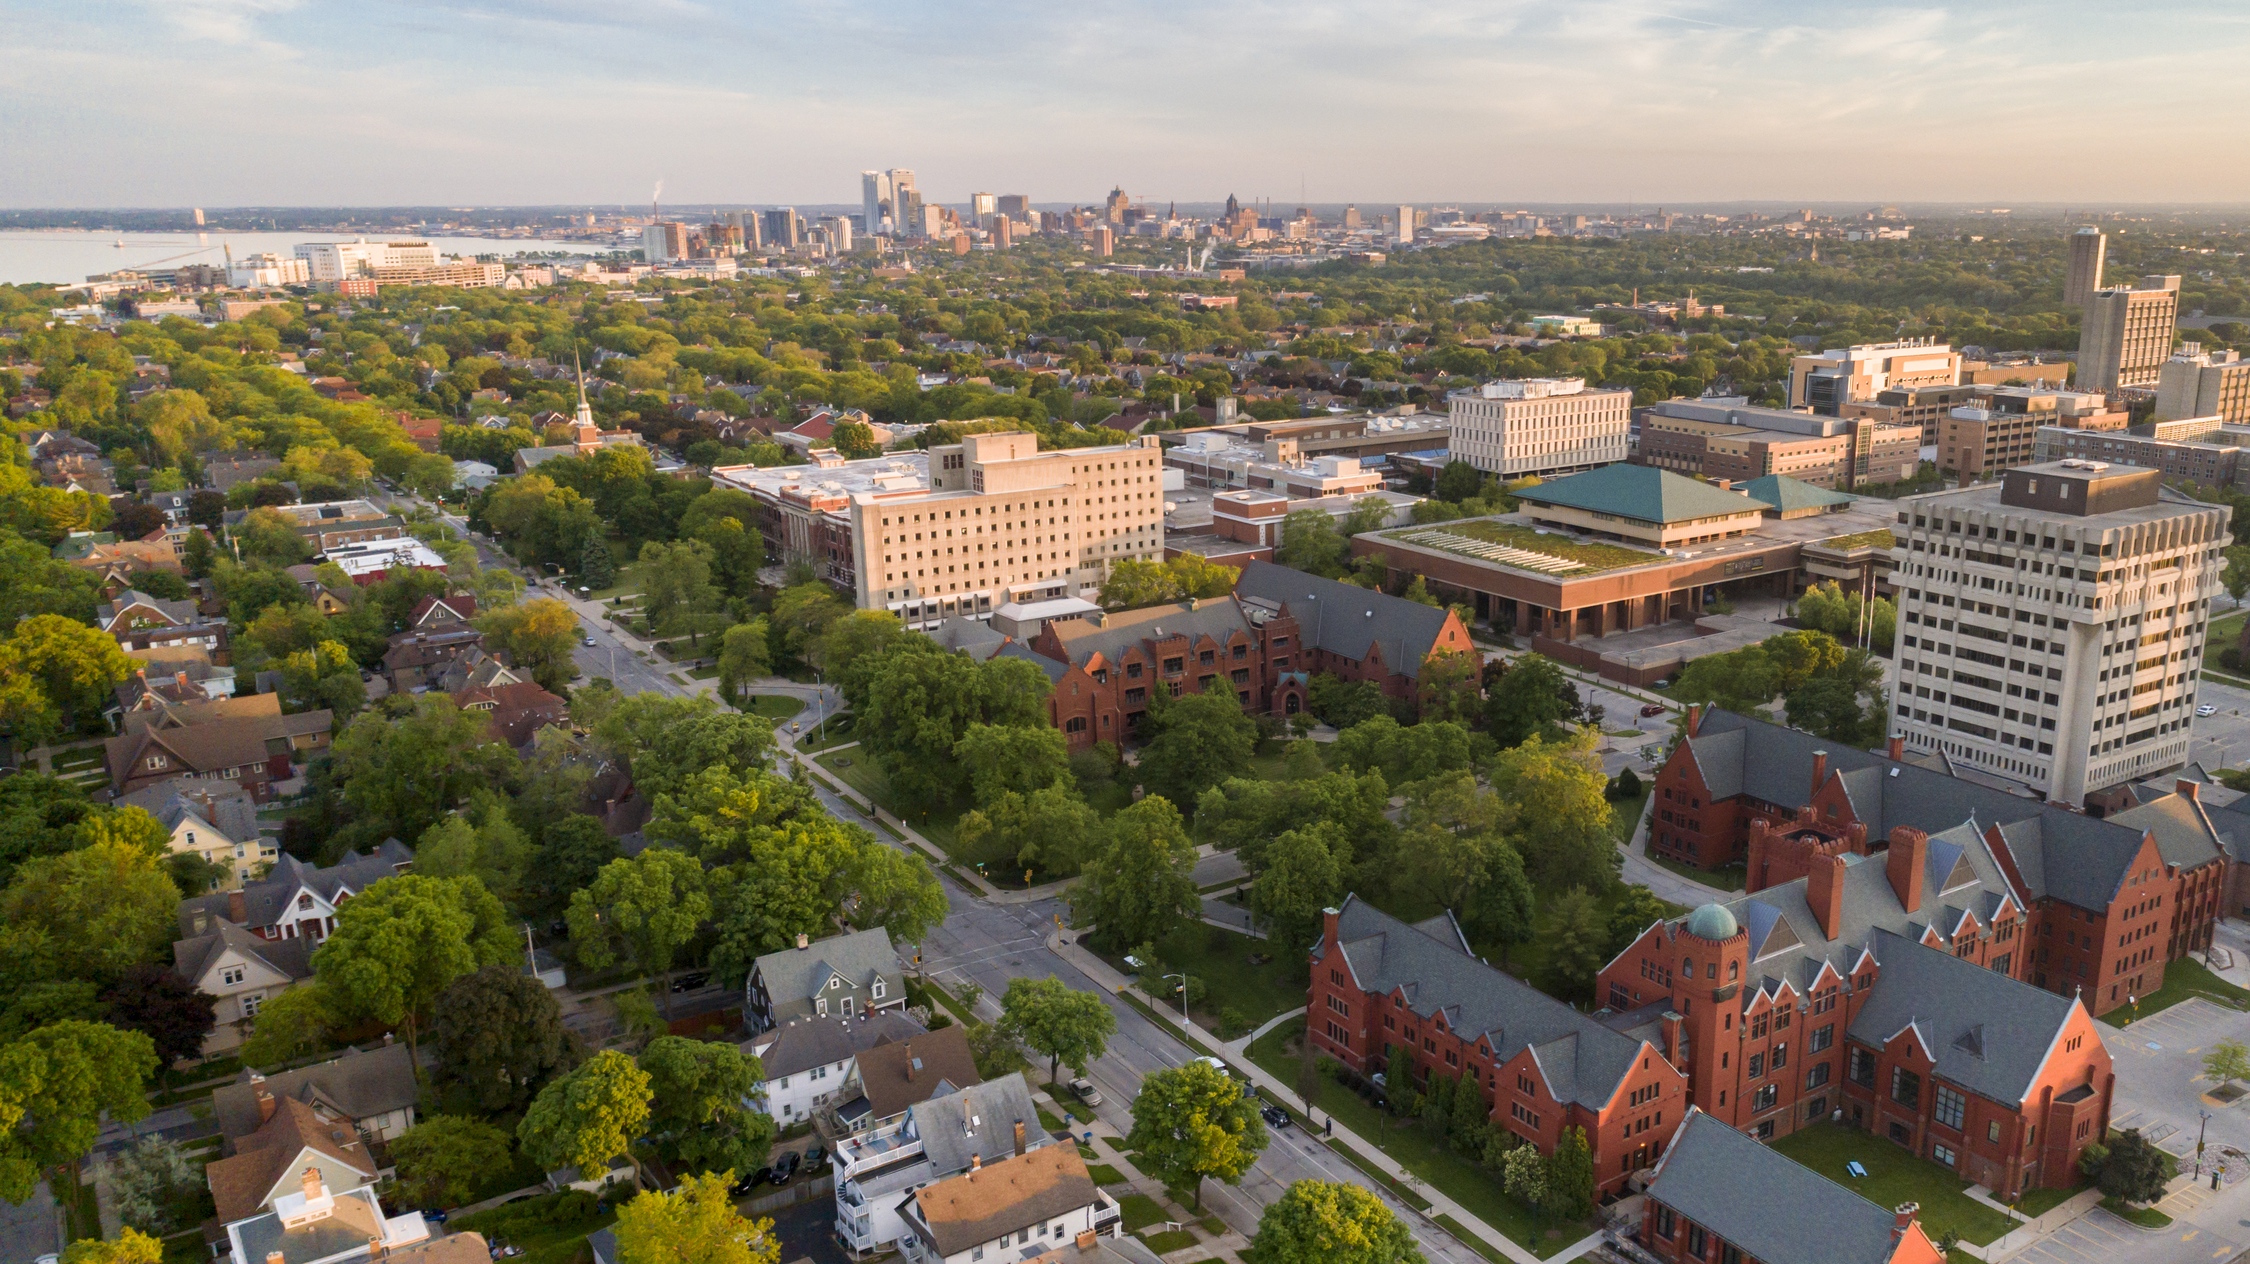 photo of campus and city